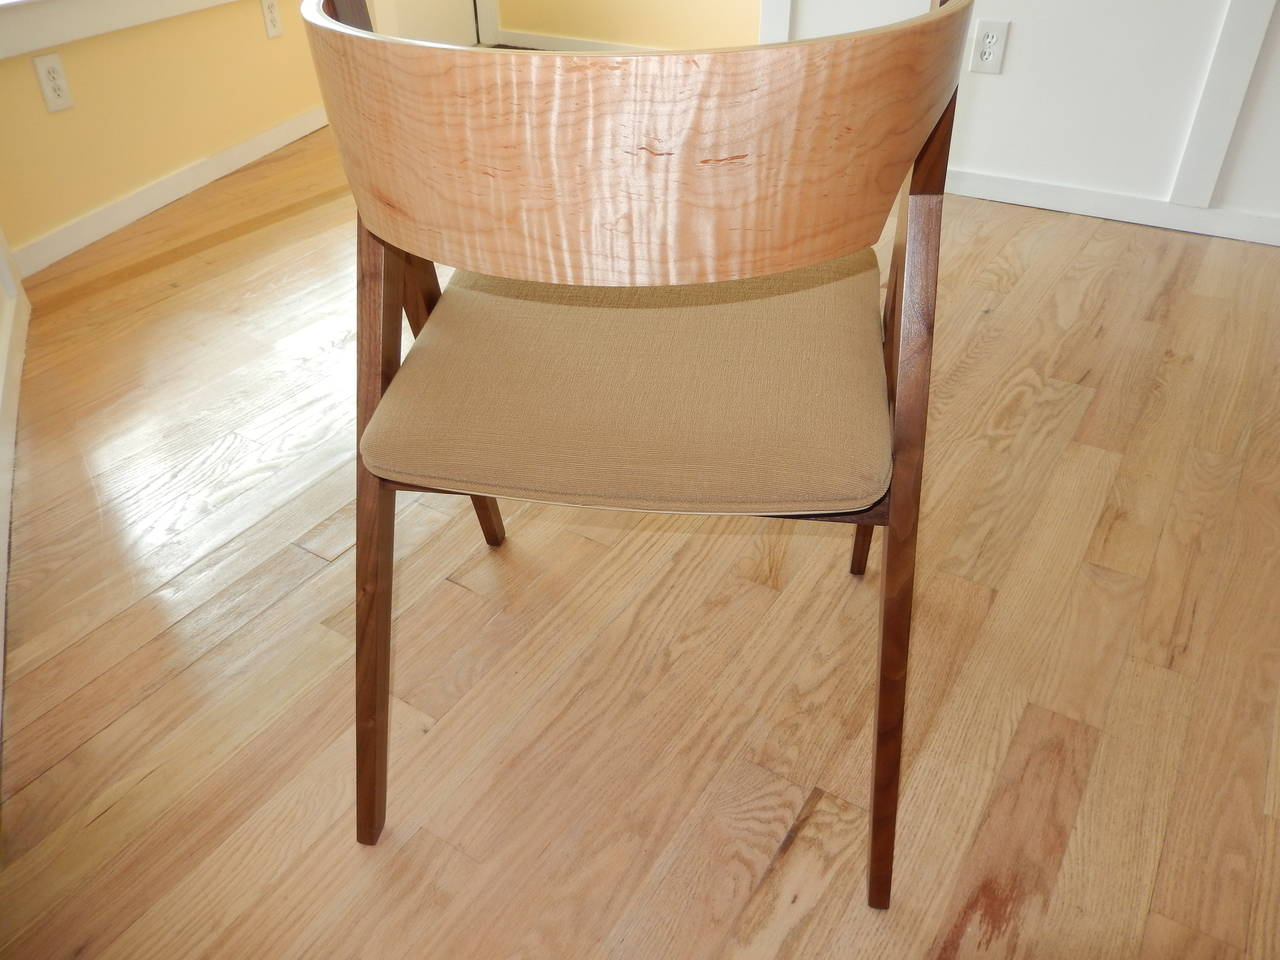 American David N Ebner's Dining Room or Desk Chair For Sale